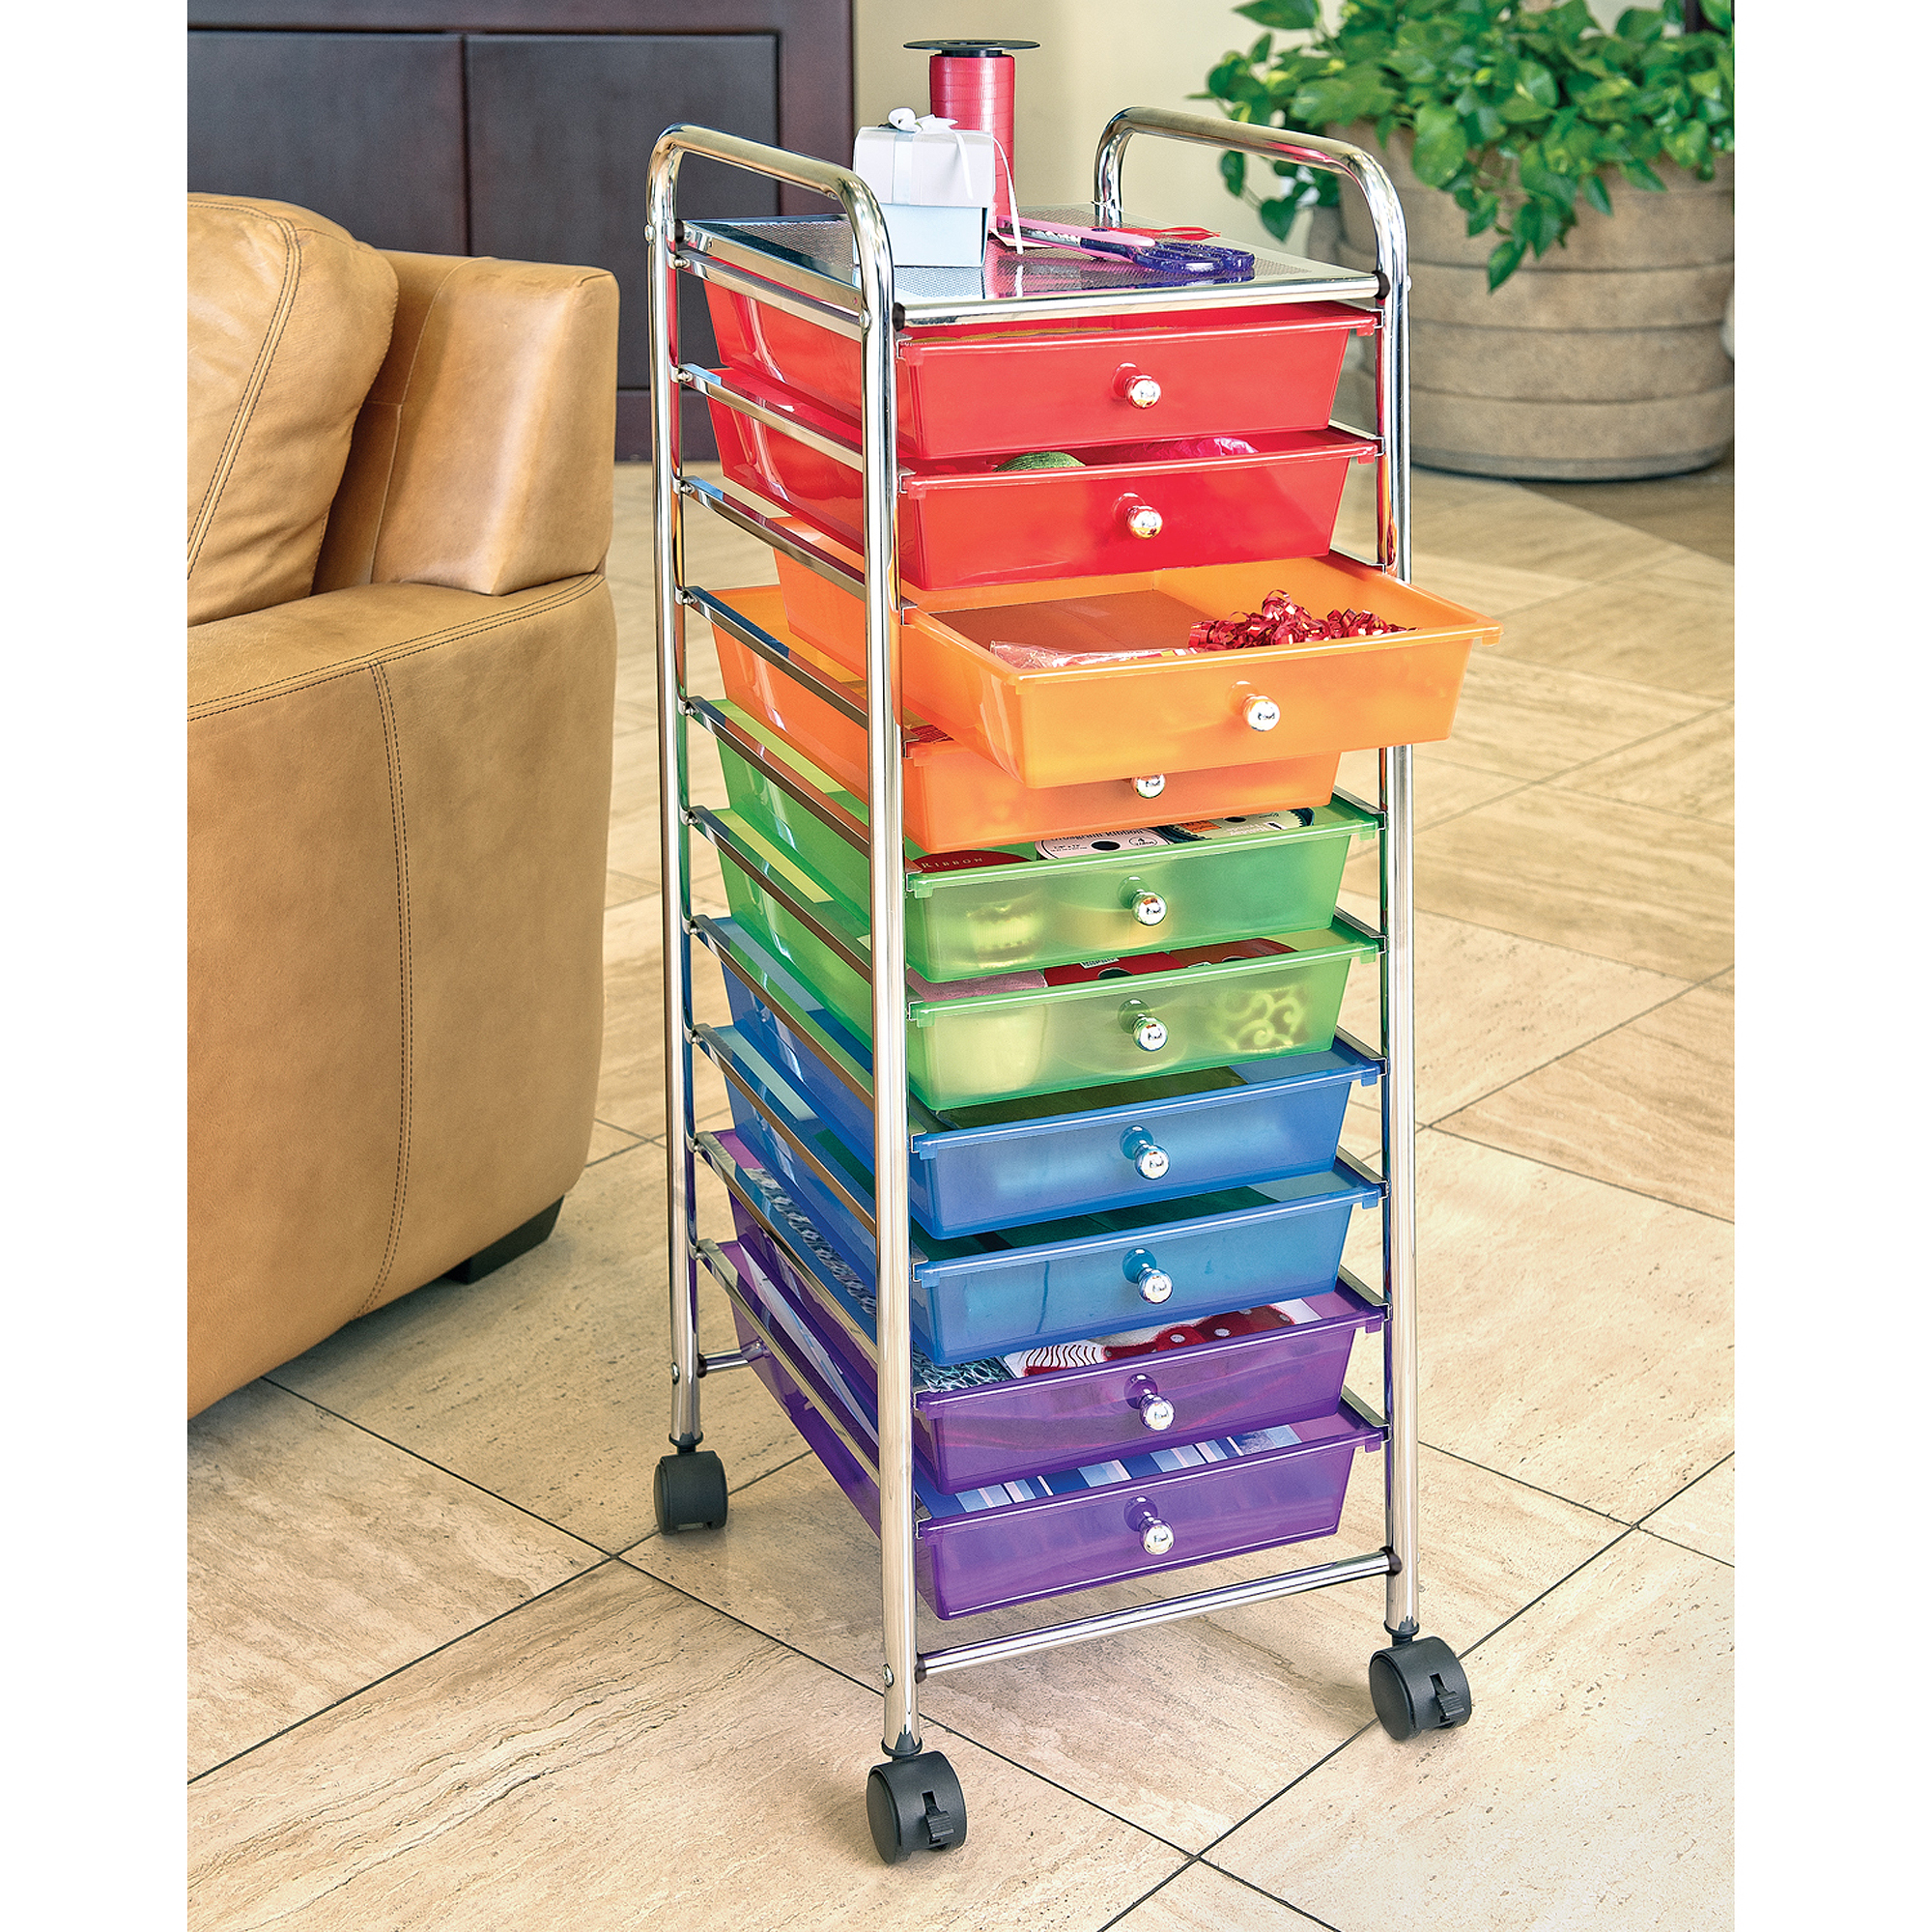 Seville Classics 10 Drawer Organizer Cart, Translucent Multi Color    Walmart.com